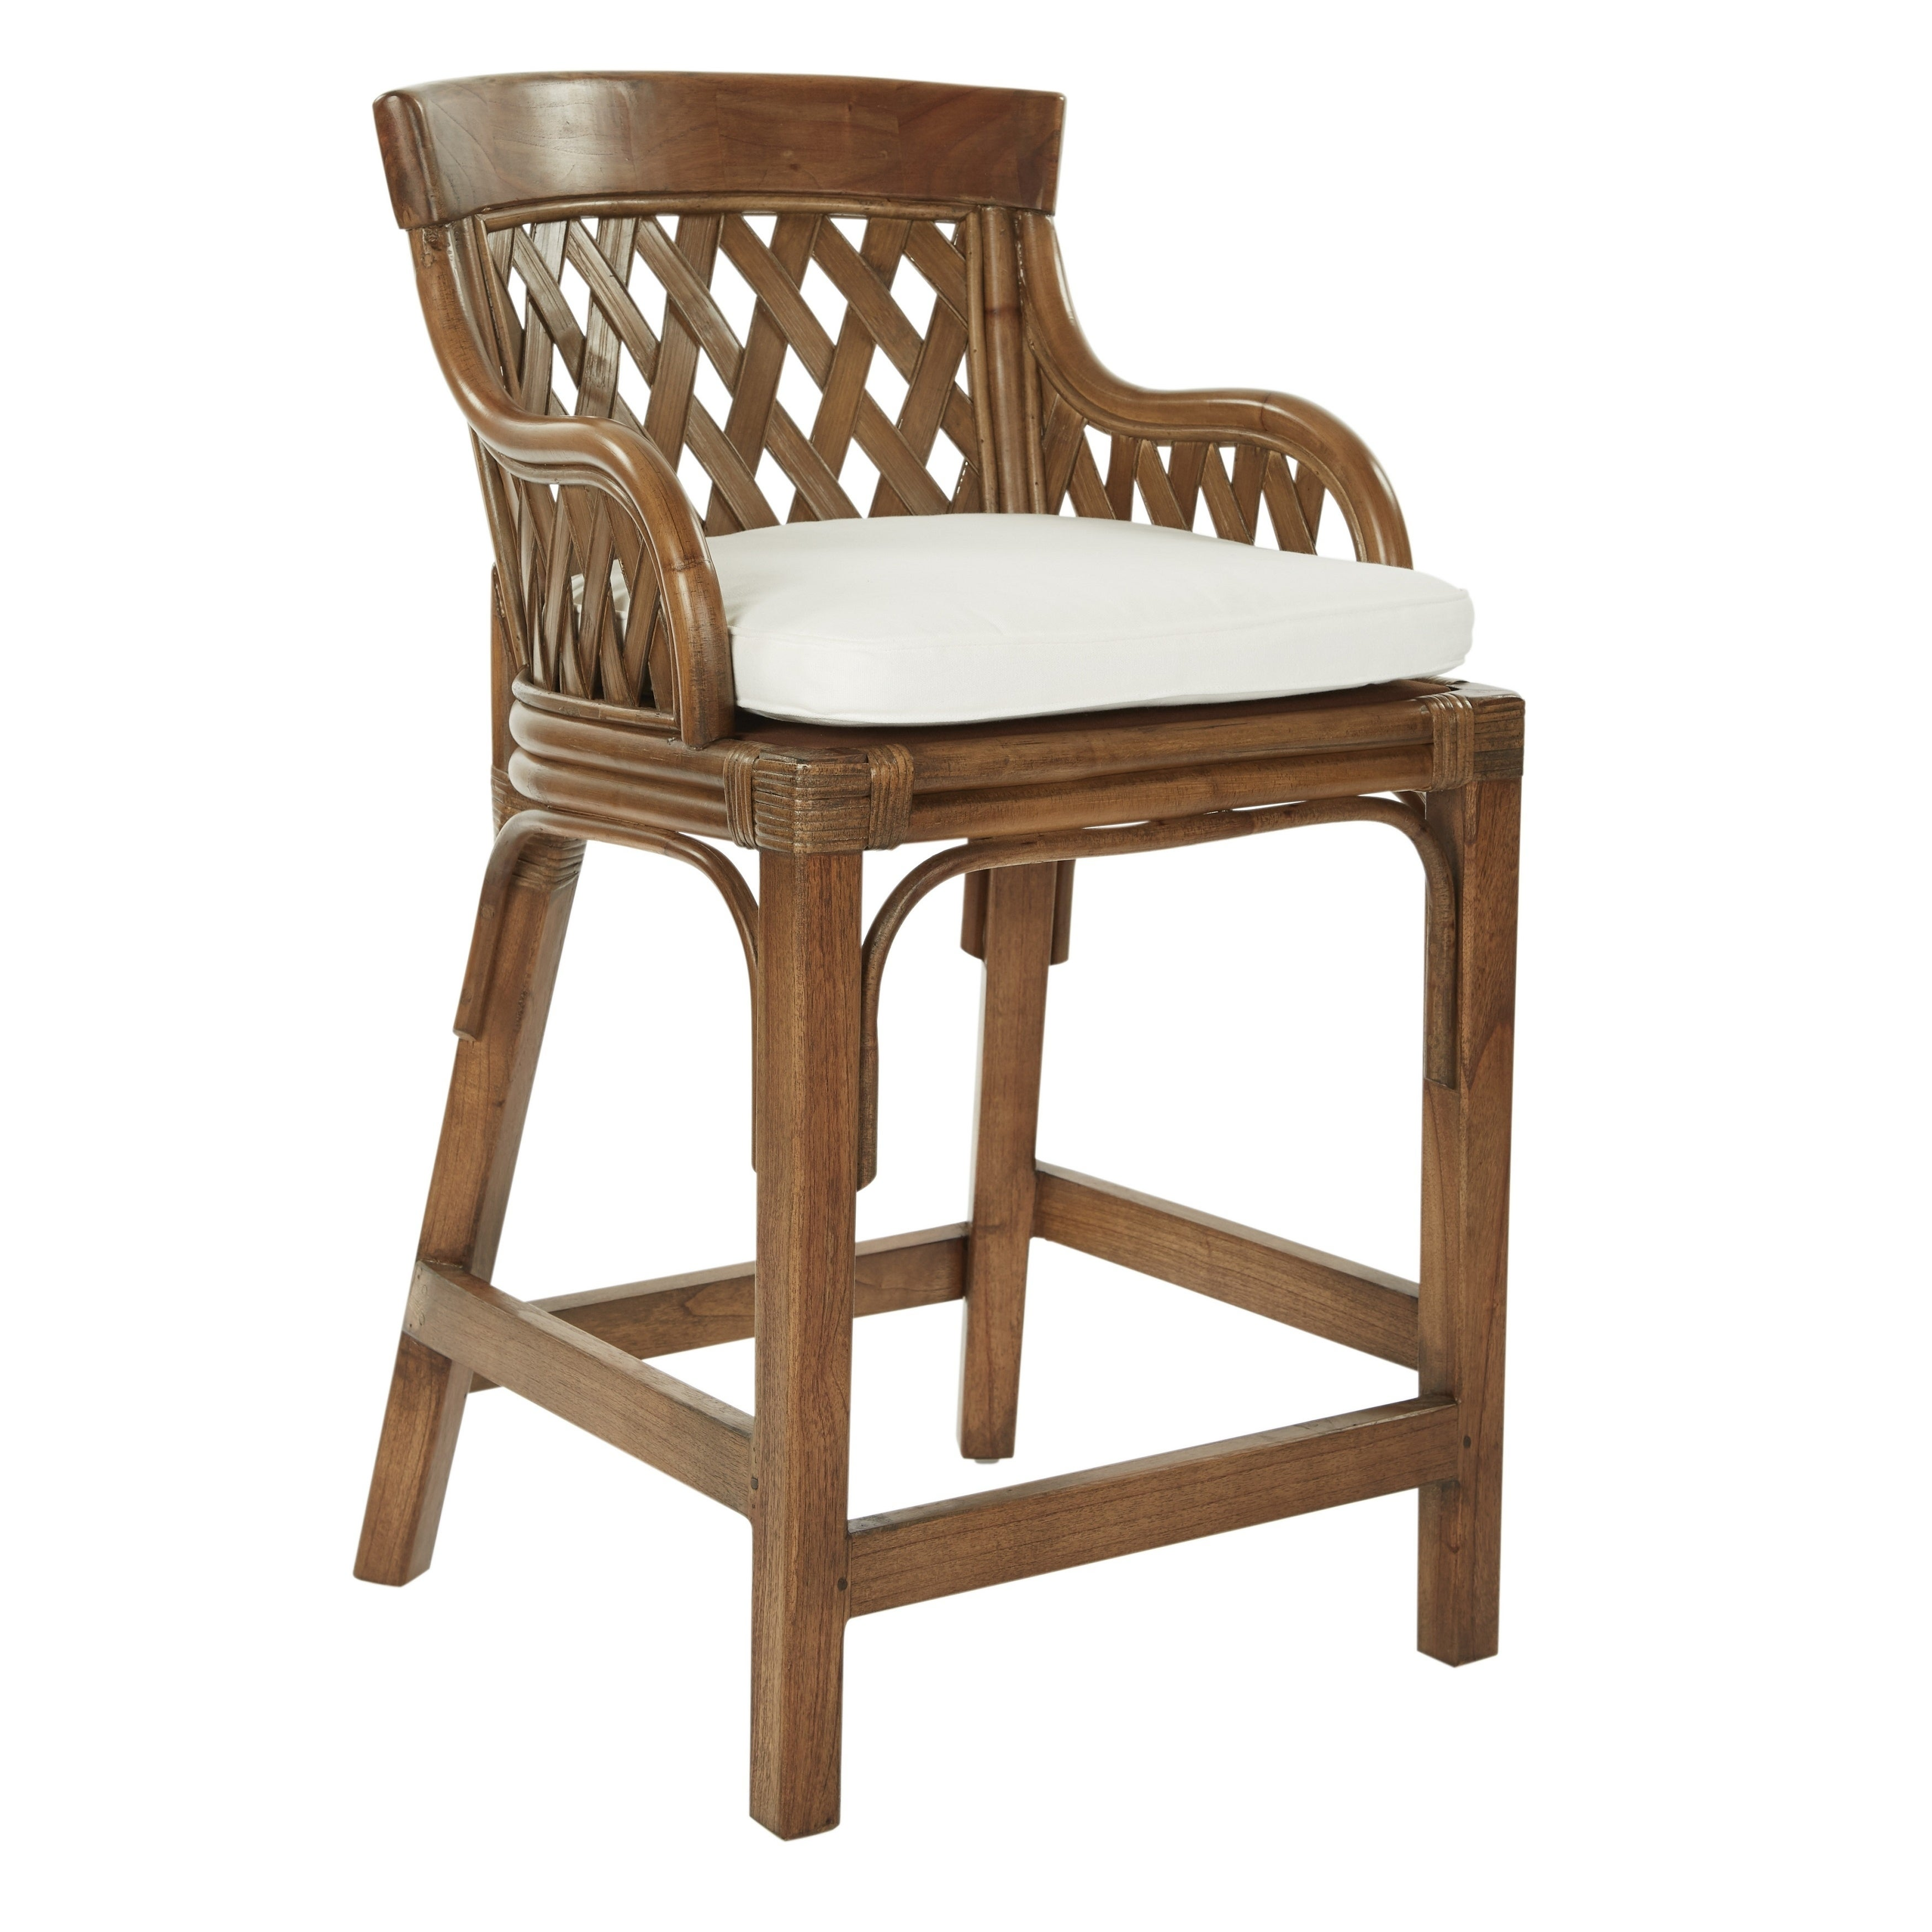 Osp Home Furnishings Plantation Cushioned Bar Stool With Woven Back